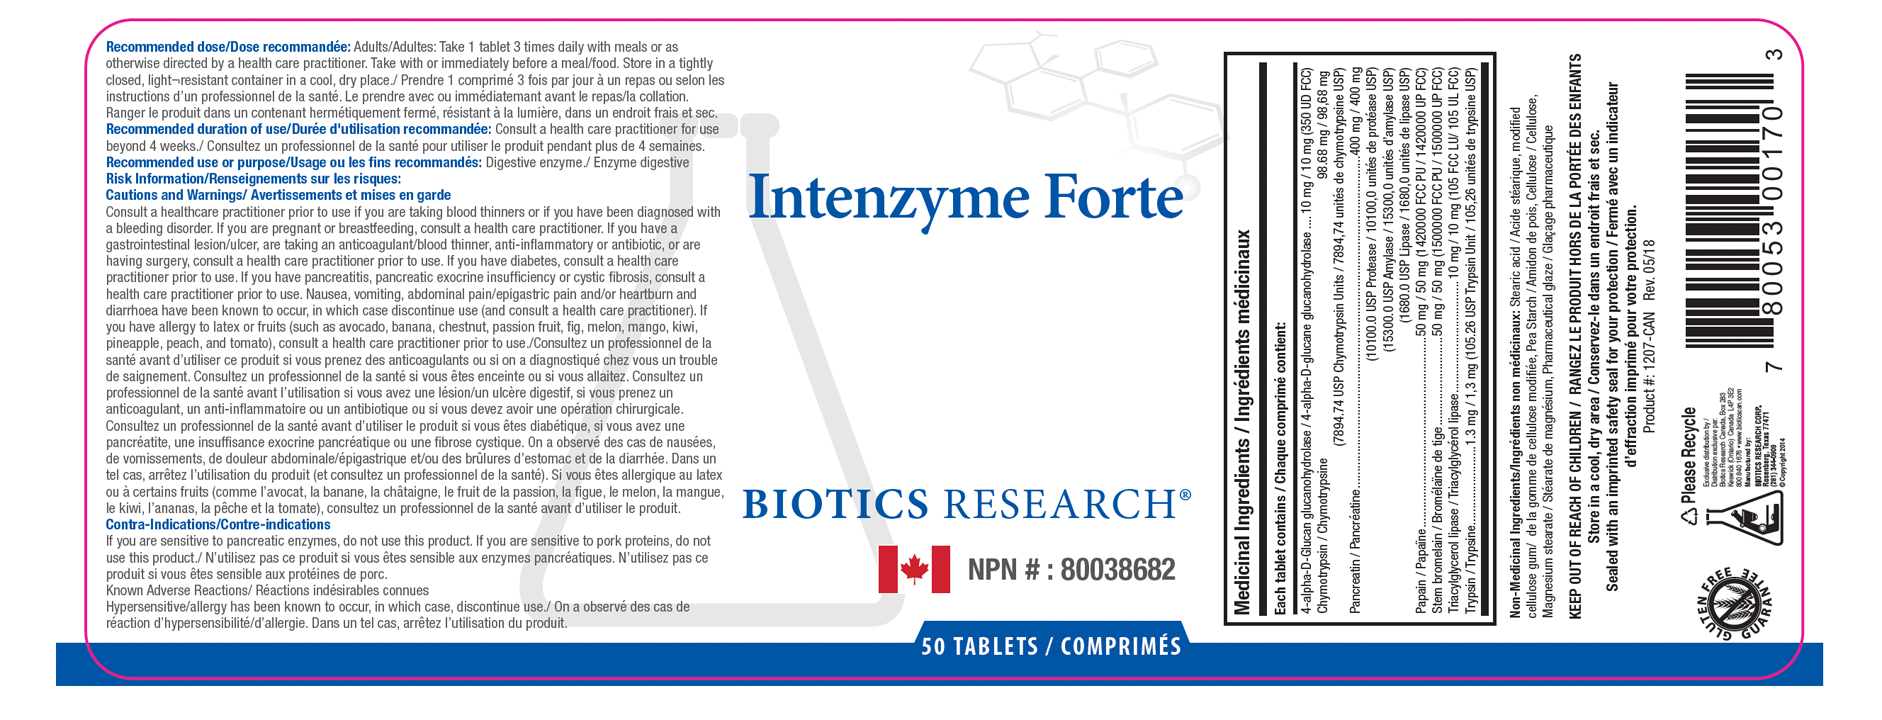 Intenzyme Forte 50 Tablets - Label